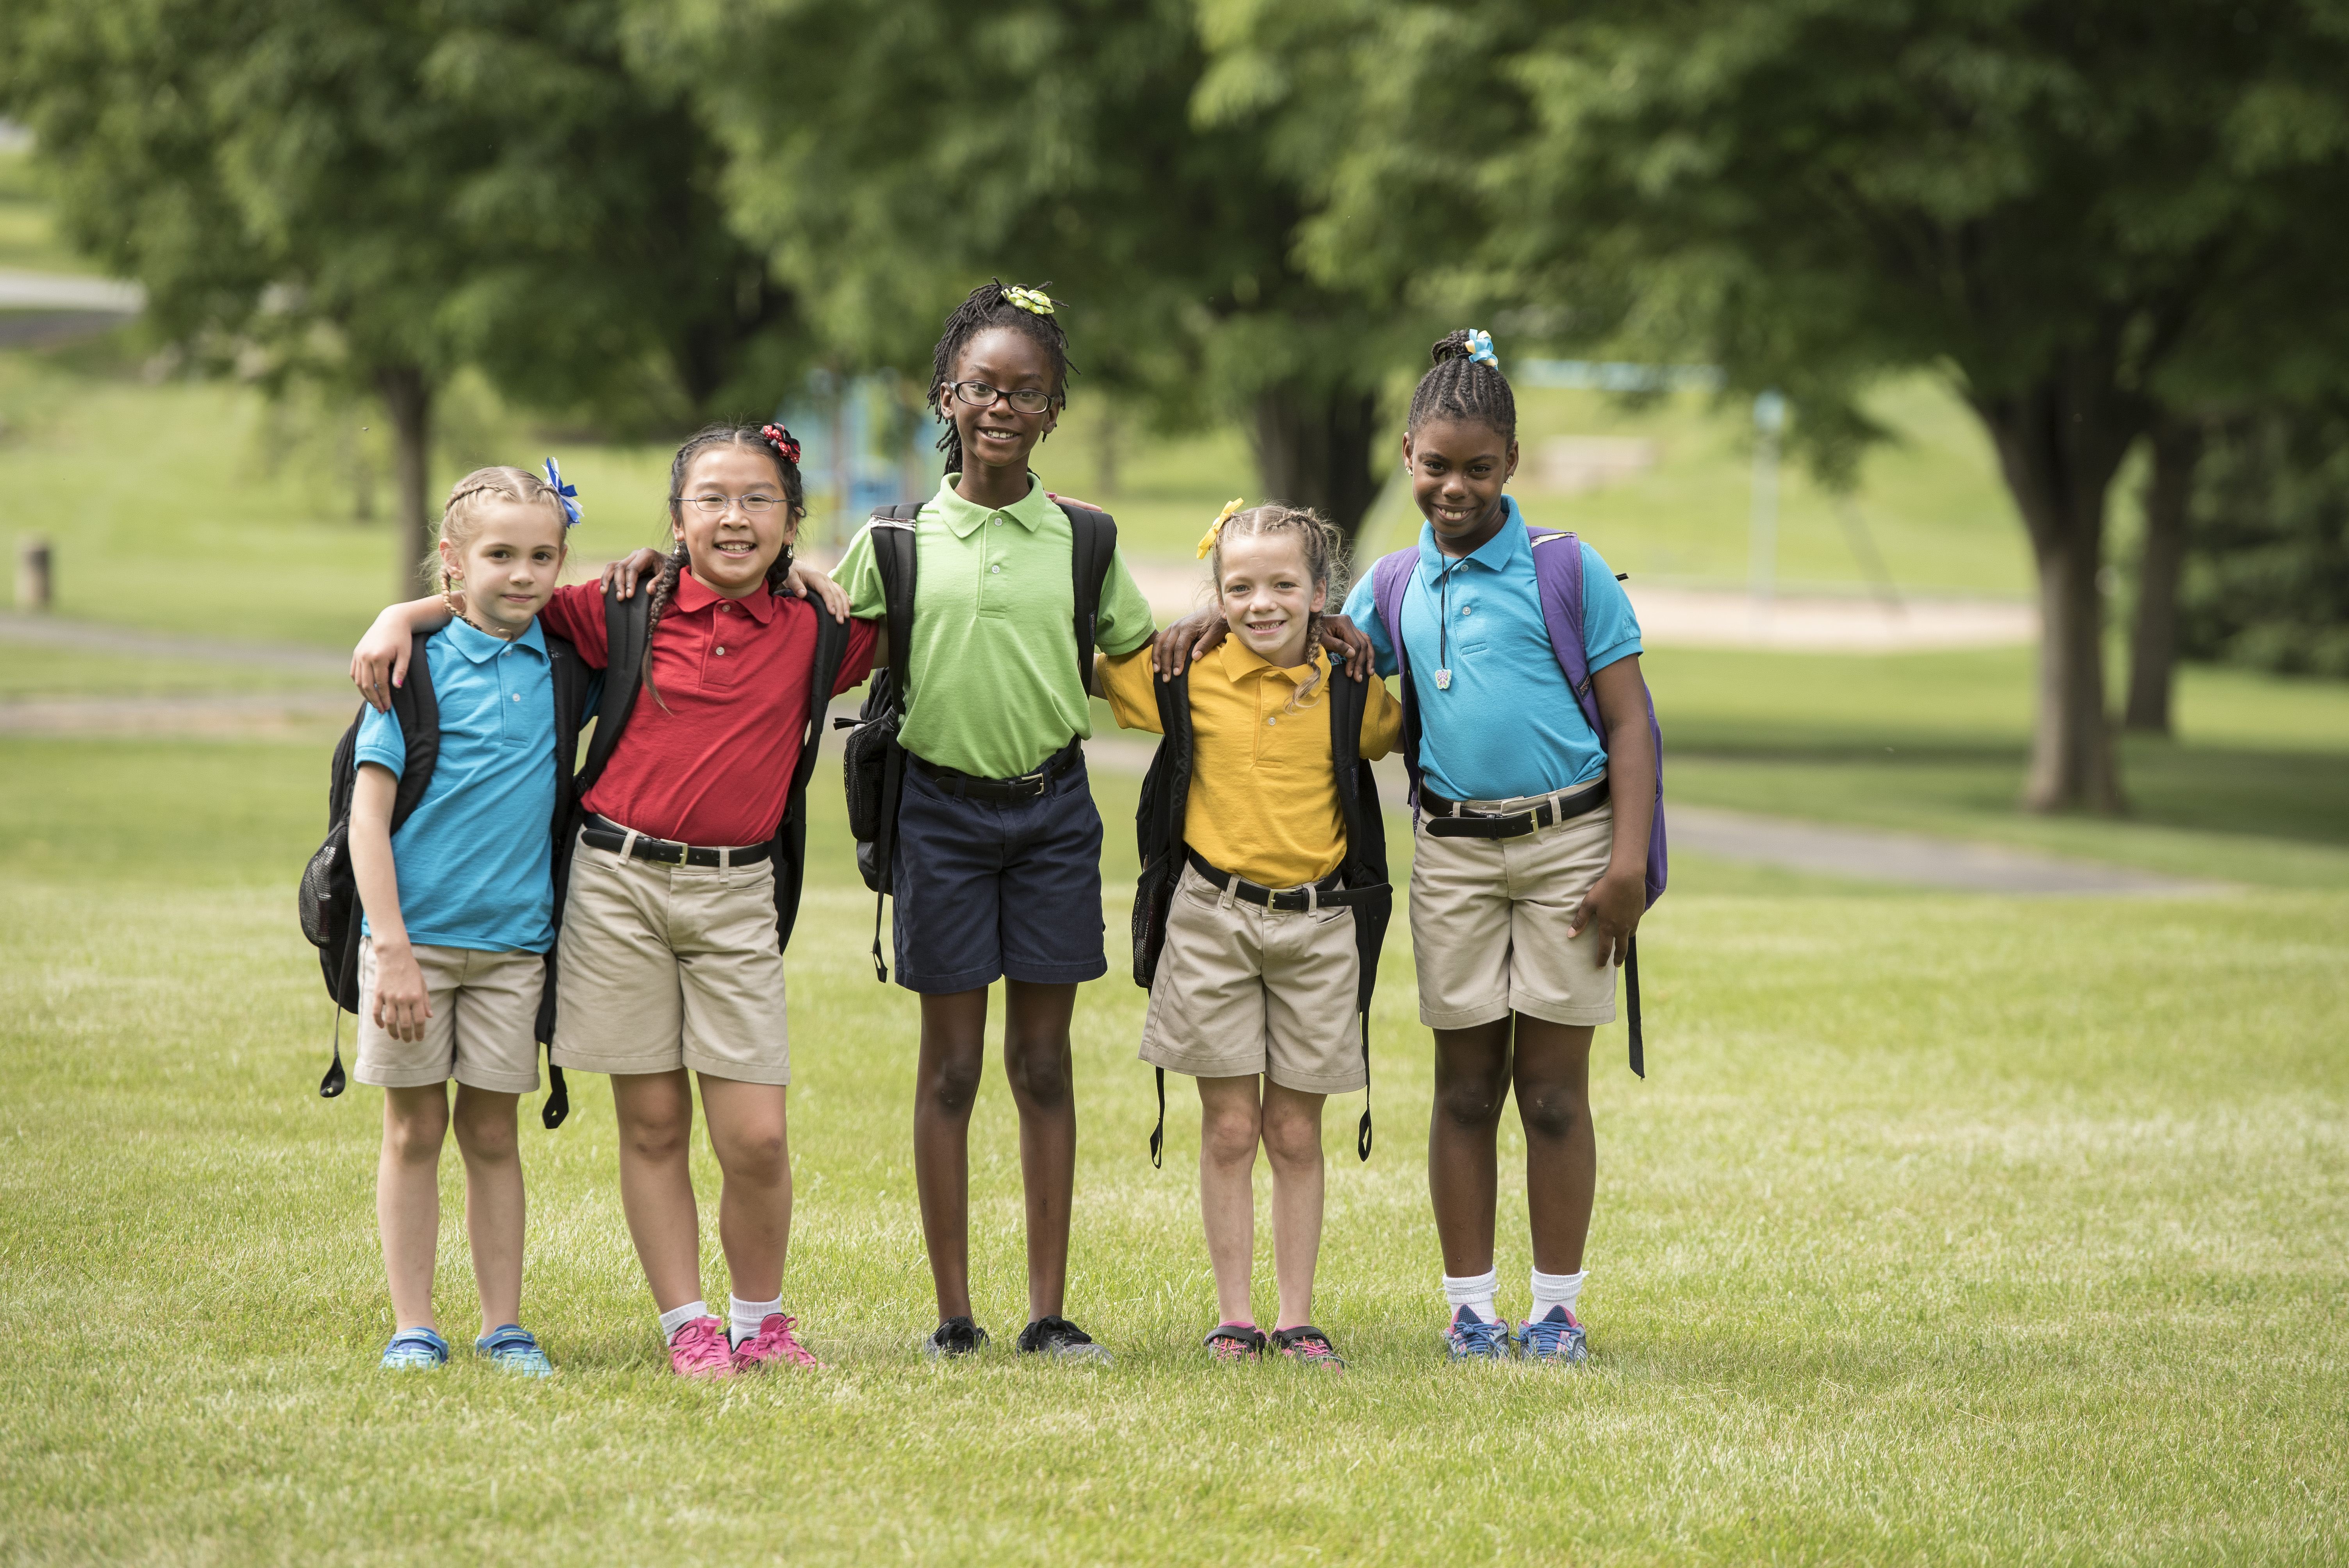 Milton Hershey School elementary schoolers on our nurturing, home-like campus.